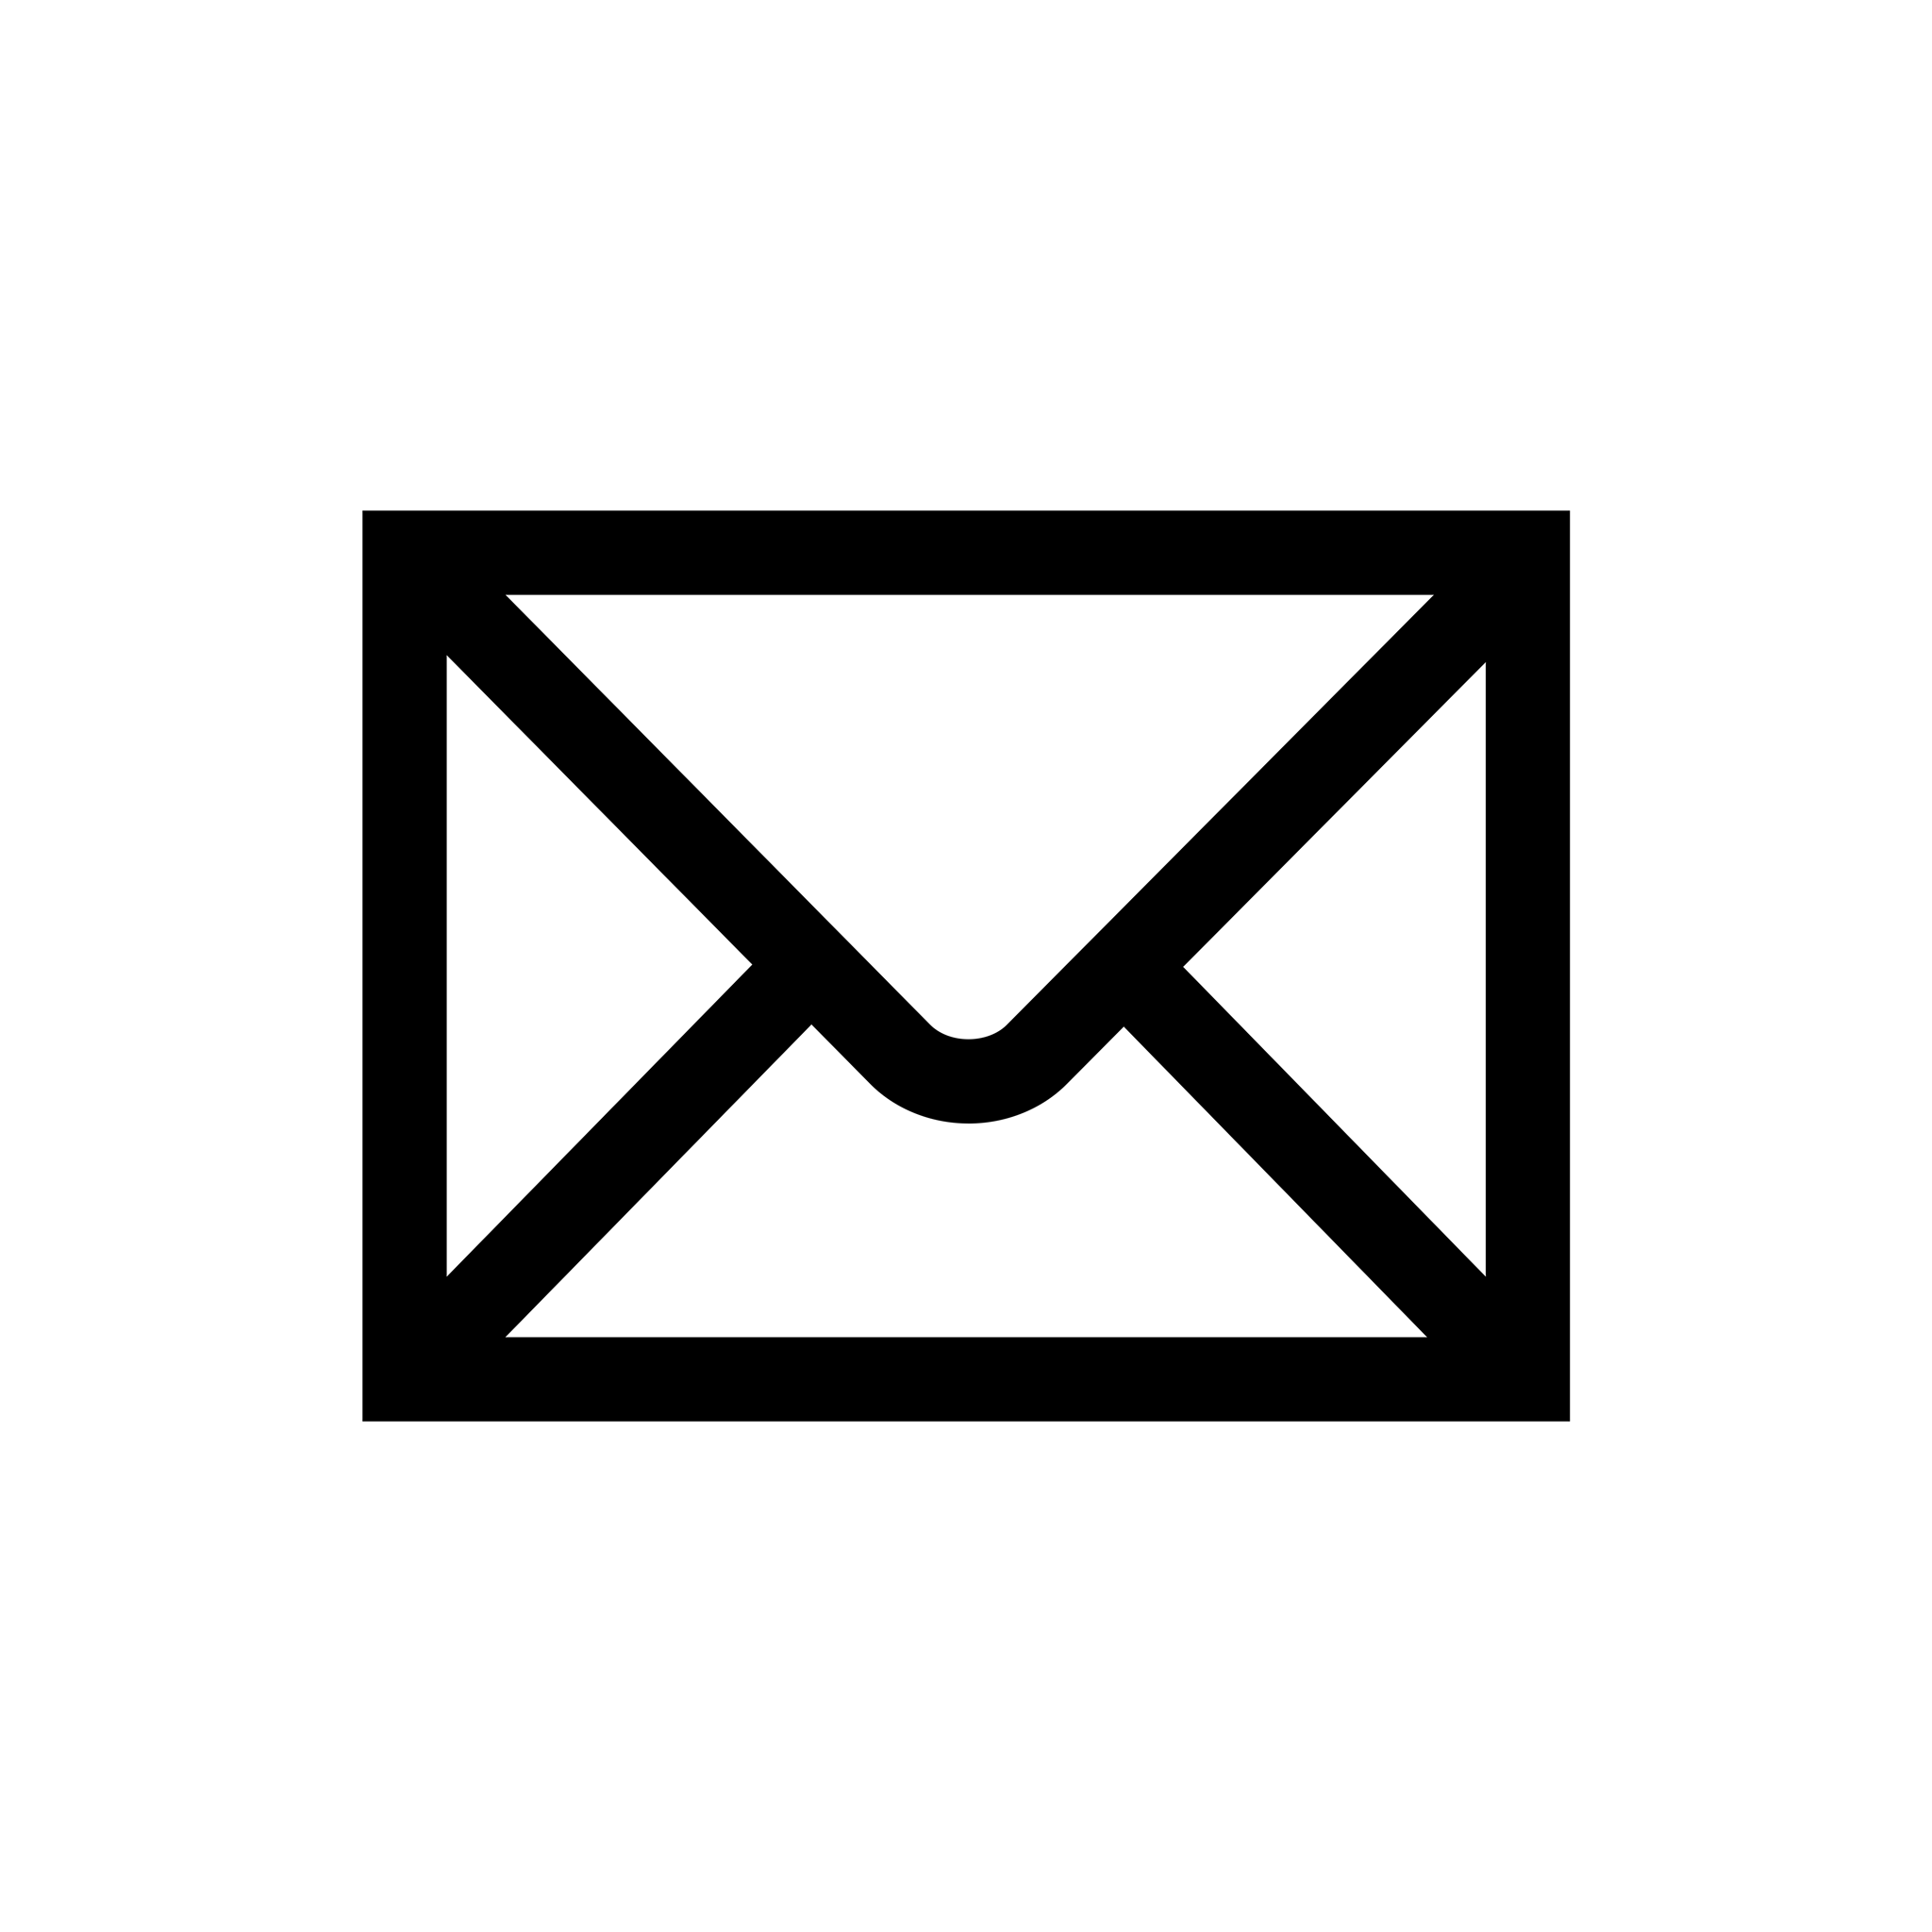 Email Icon Black Simple - Email PNG